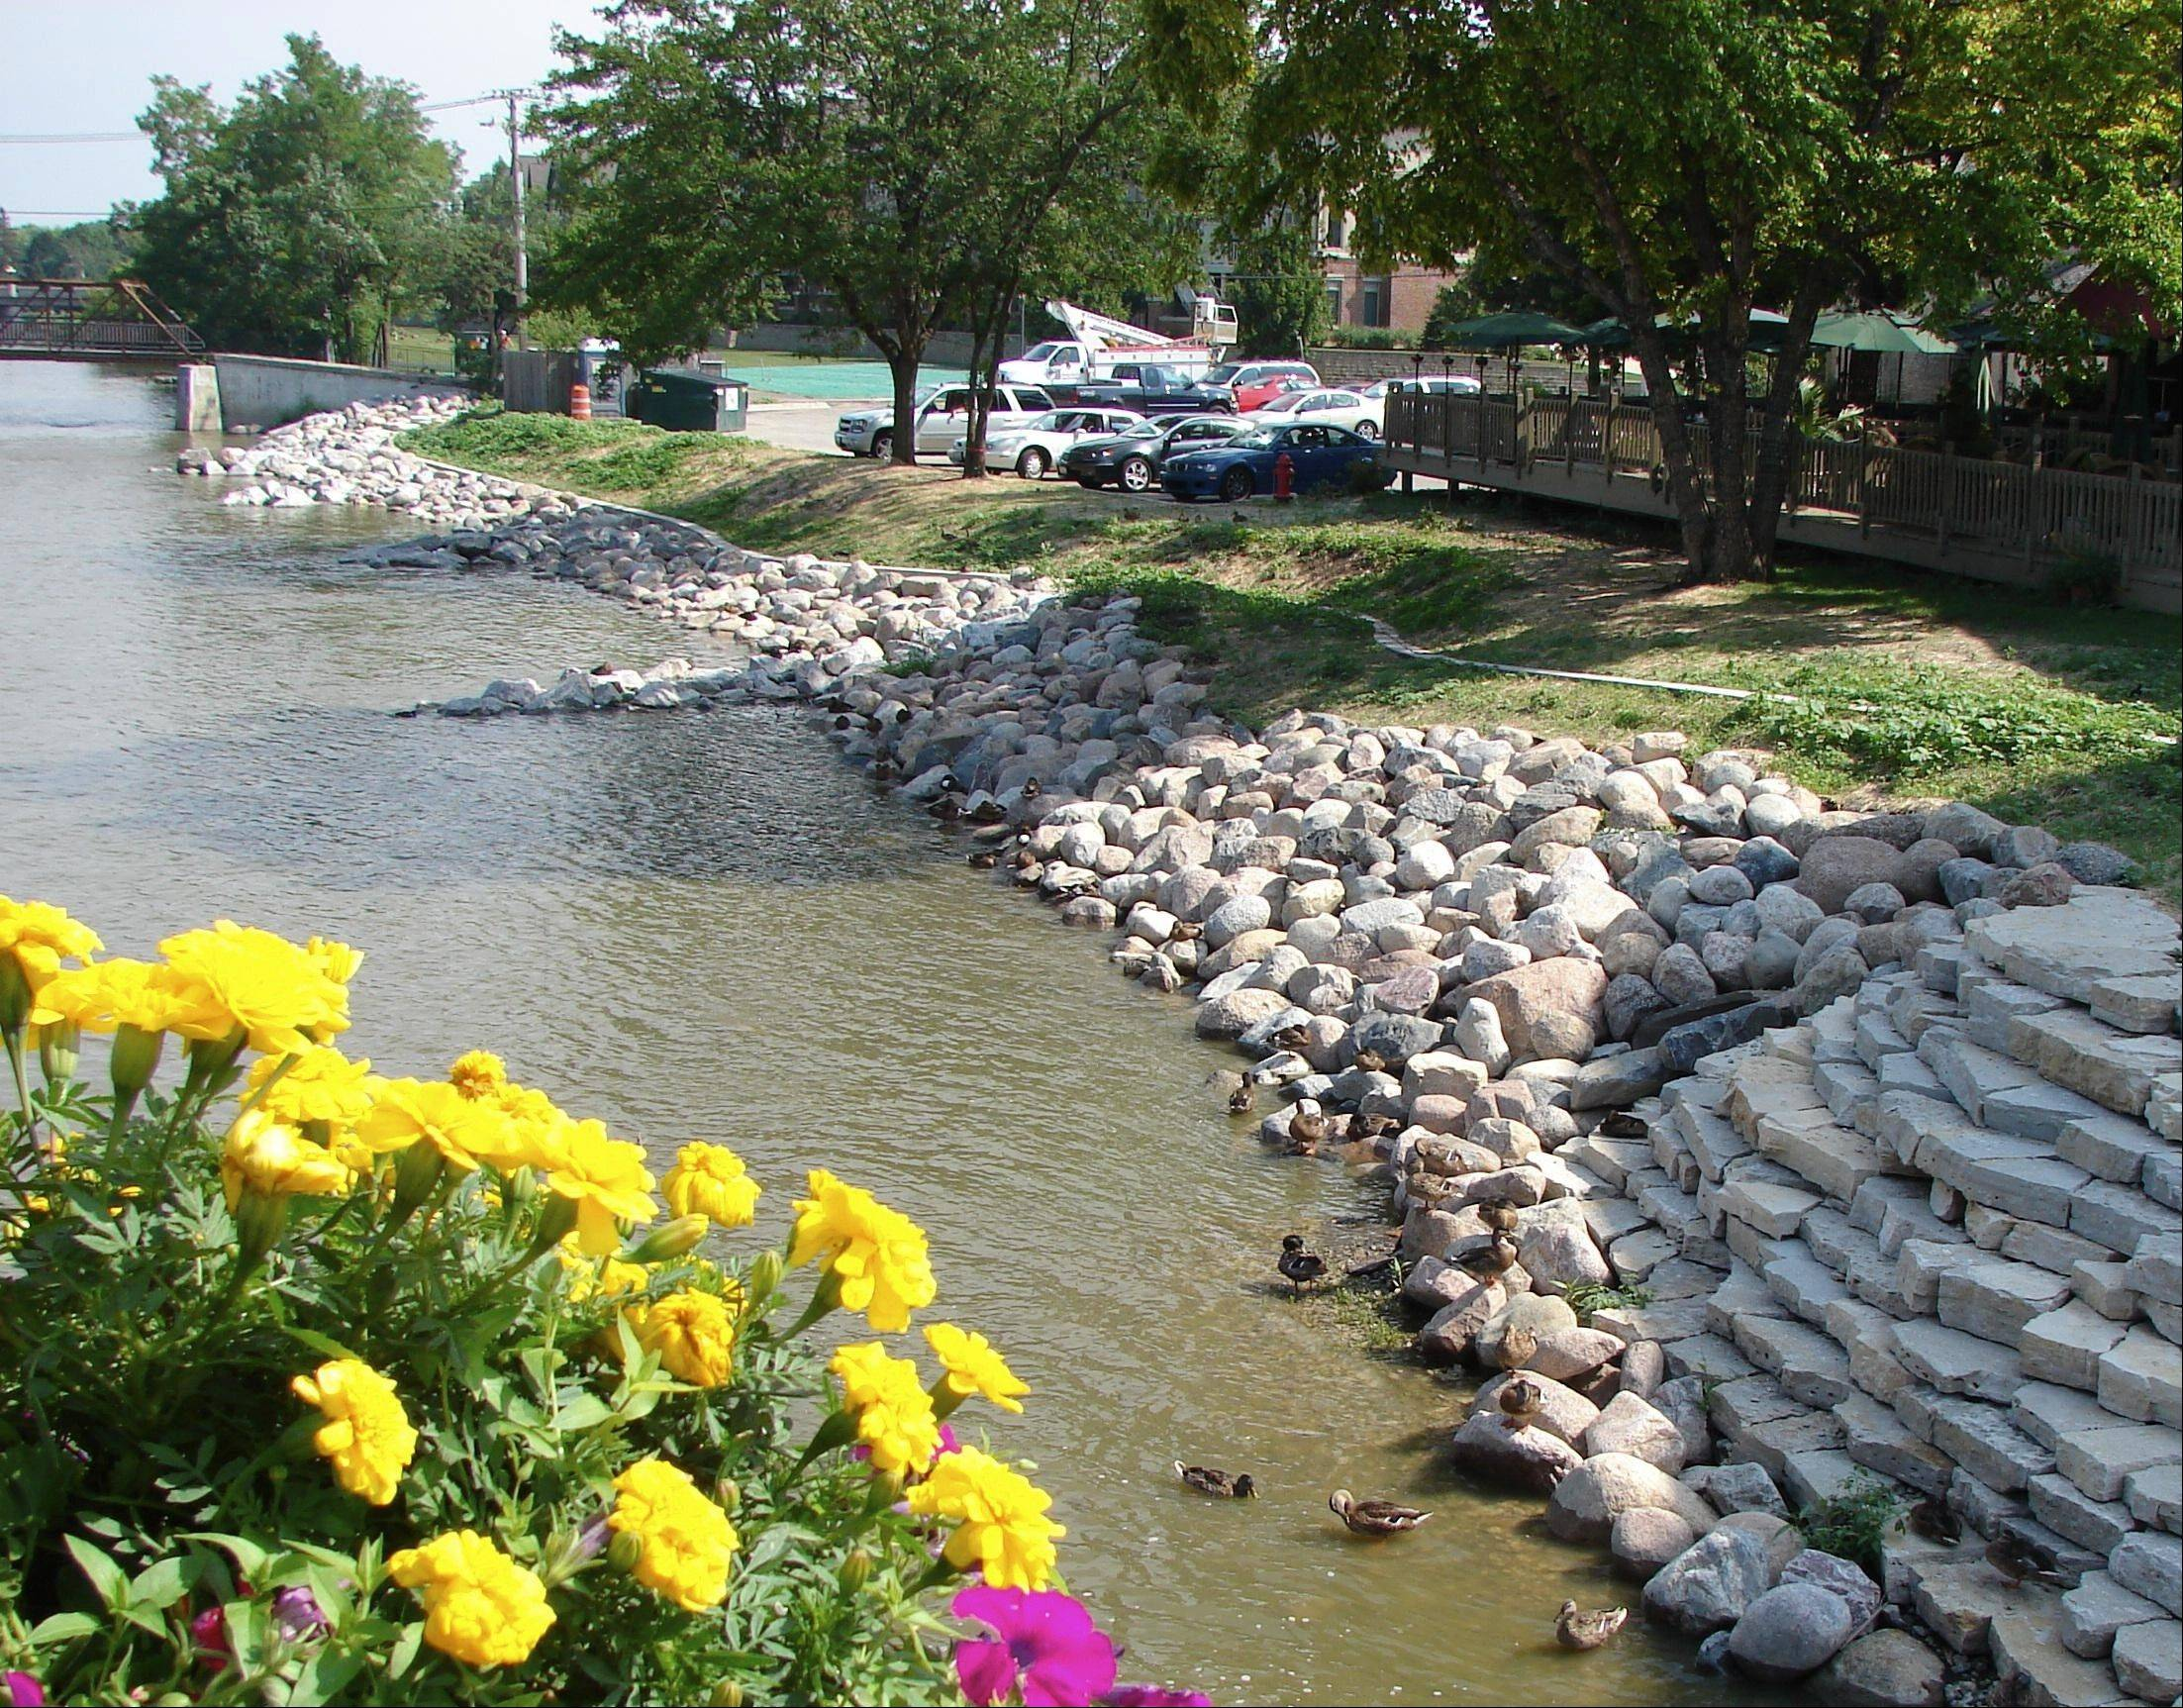 Fundraising efforts have yielded small improvements along the river, including natural plantings and expanded pedestrian use for walking, running and fishing.